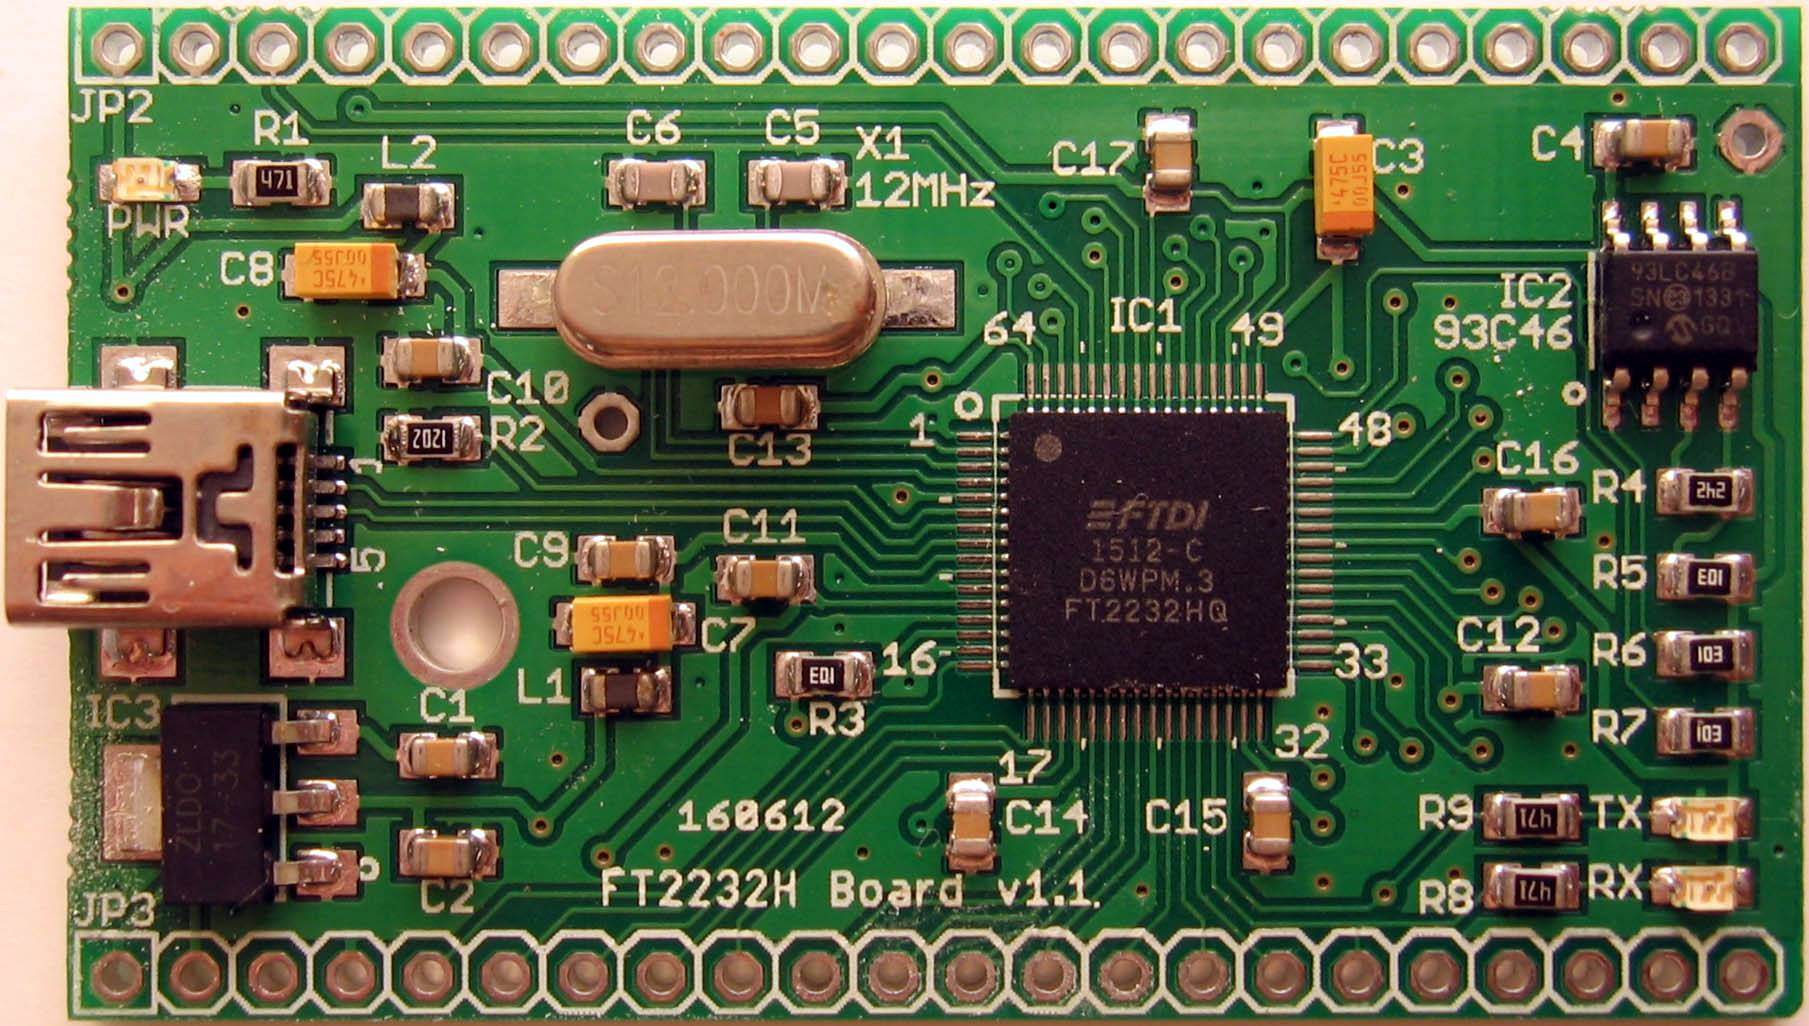 FT2232H Board without maket fields TOP